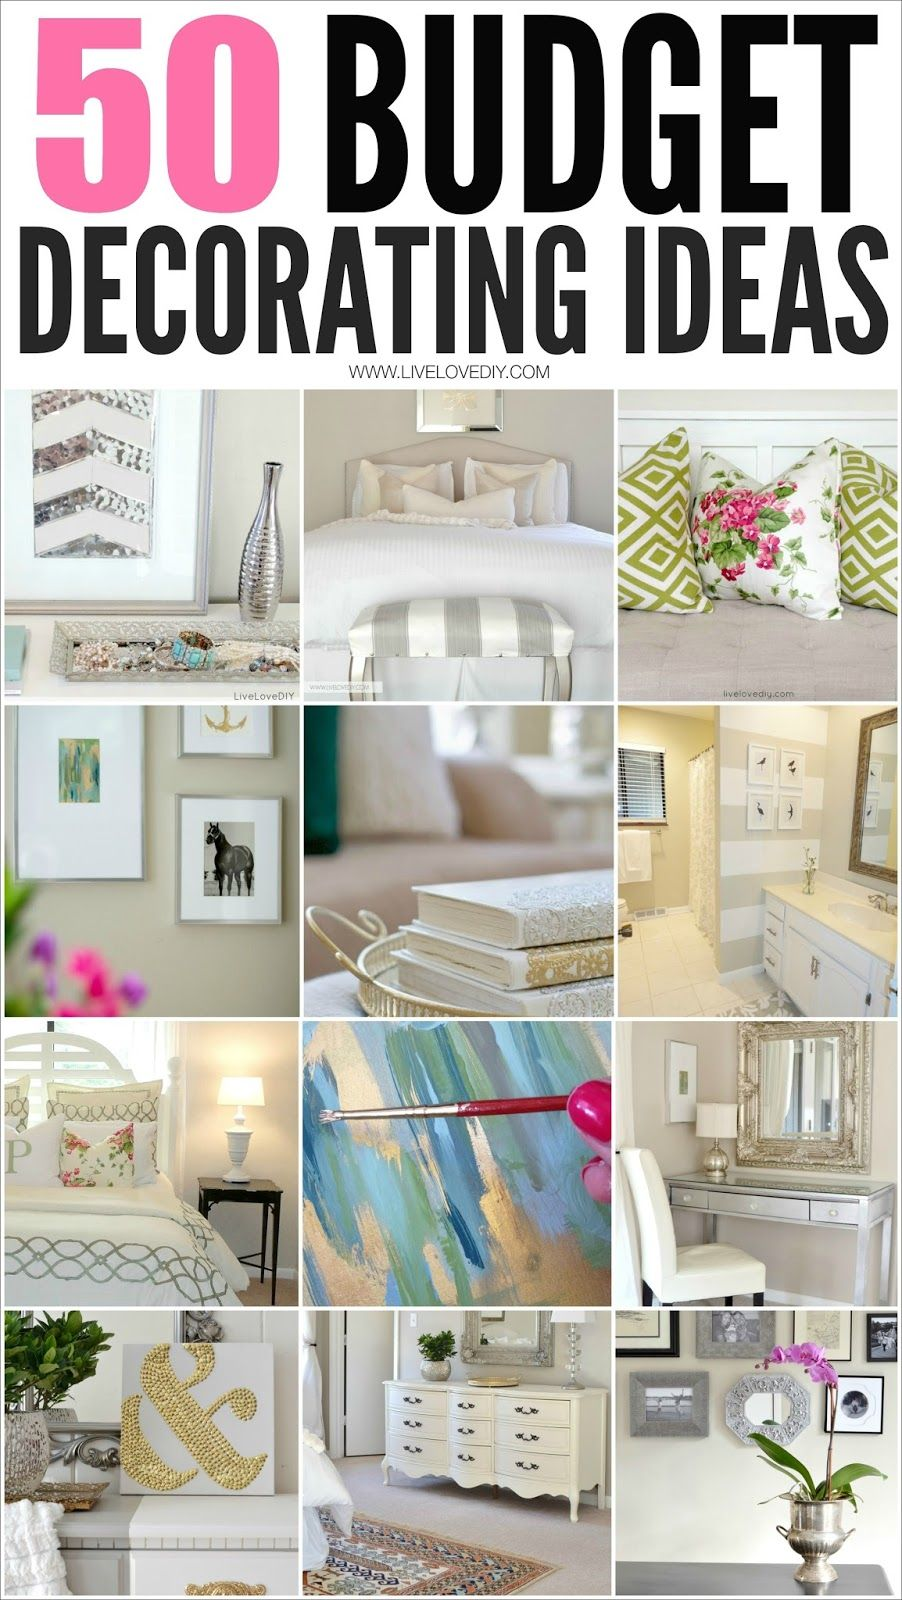 Superieur 50 Budget Decorating Tips You Should Know!